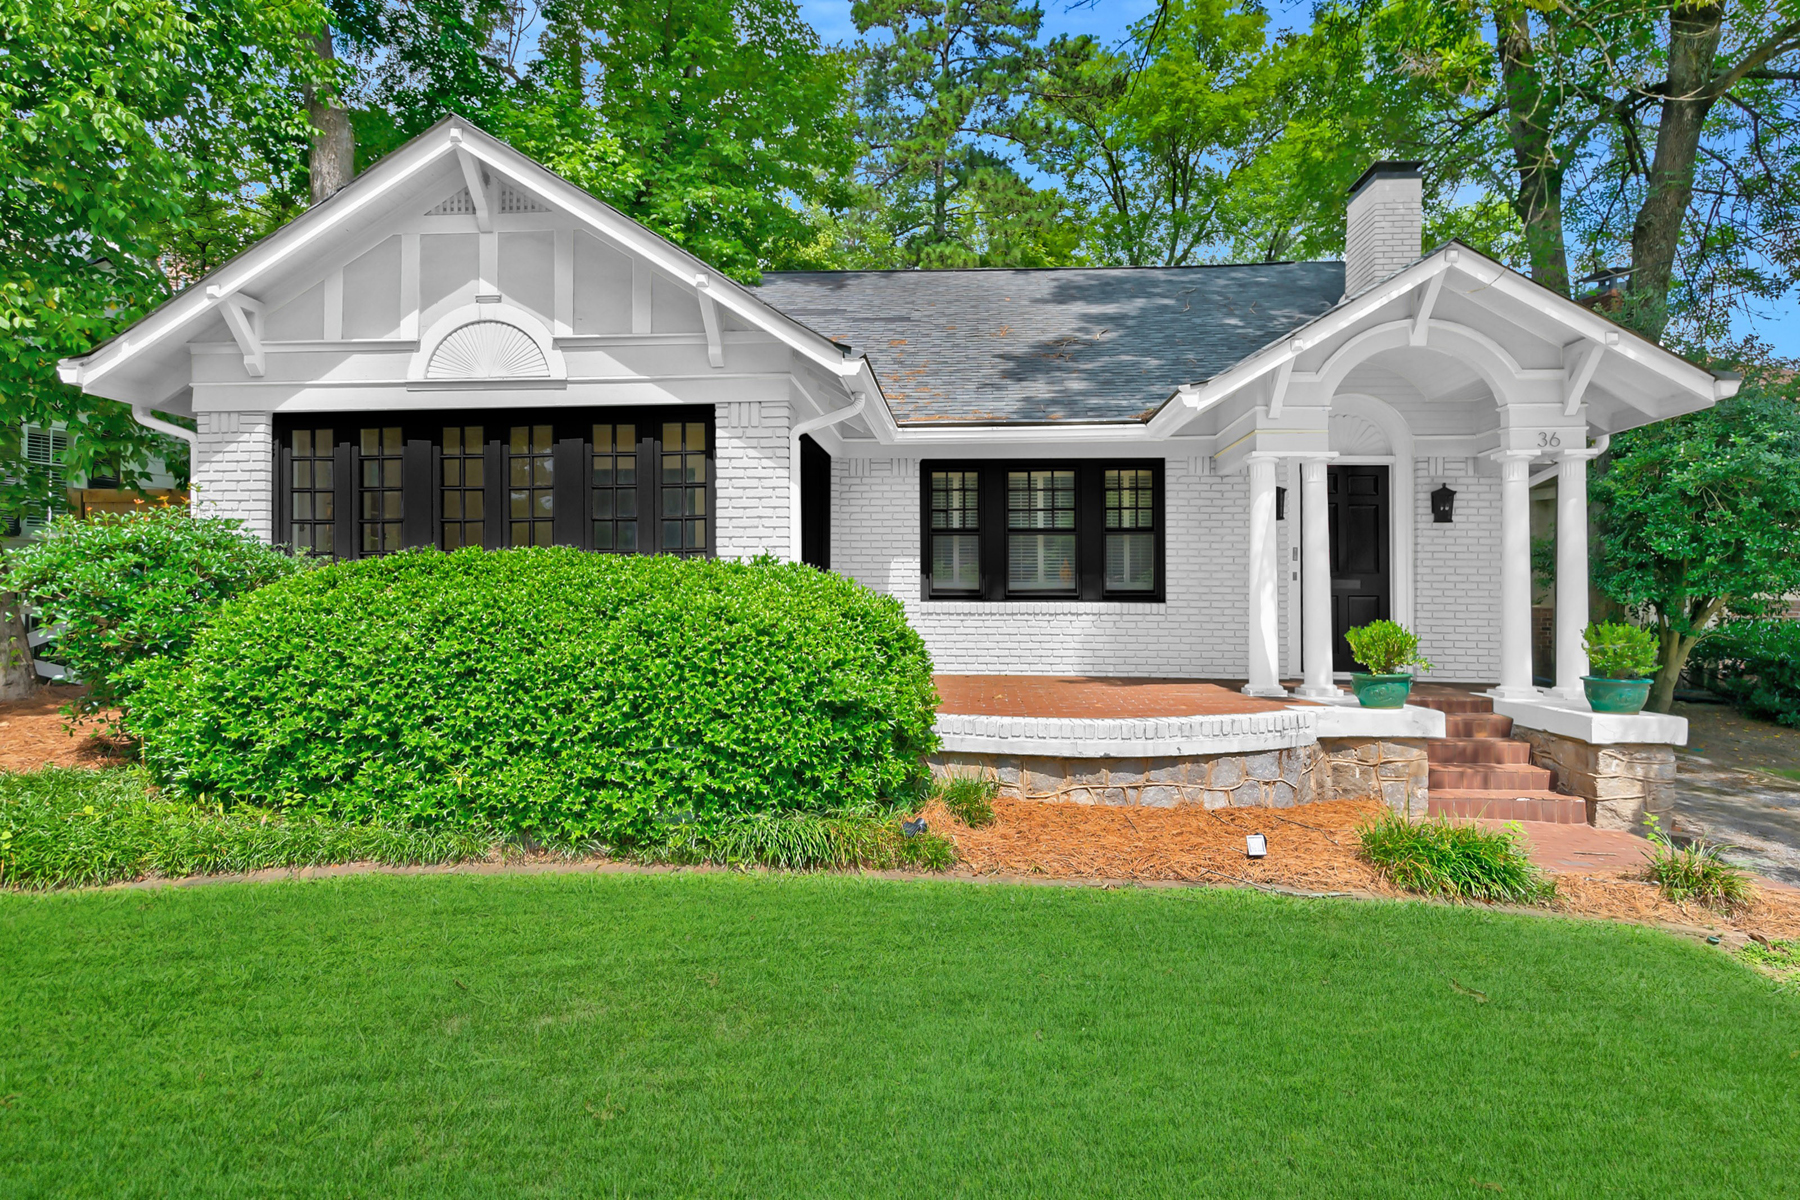 Single Family Homes για την Πώληση στο Located Directly Across The Street From Ansley Golf Course 36 Polo Drive Atlanta, Γεωργια 30309 Ηνωμένες Πολιτείες